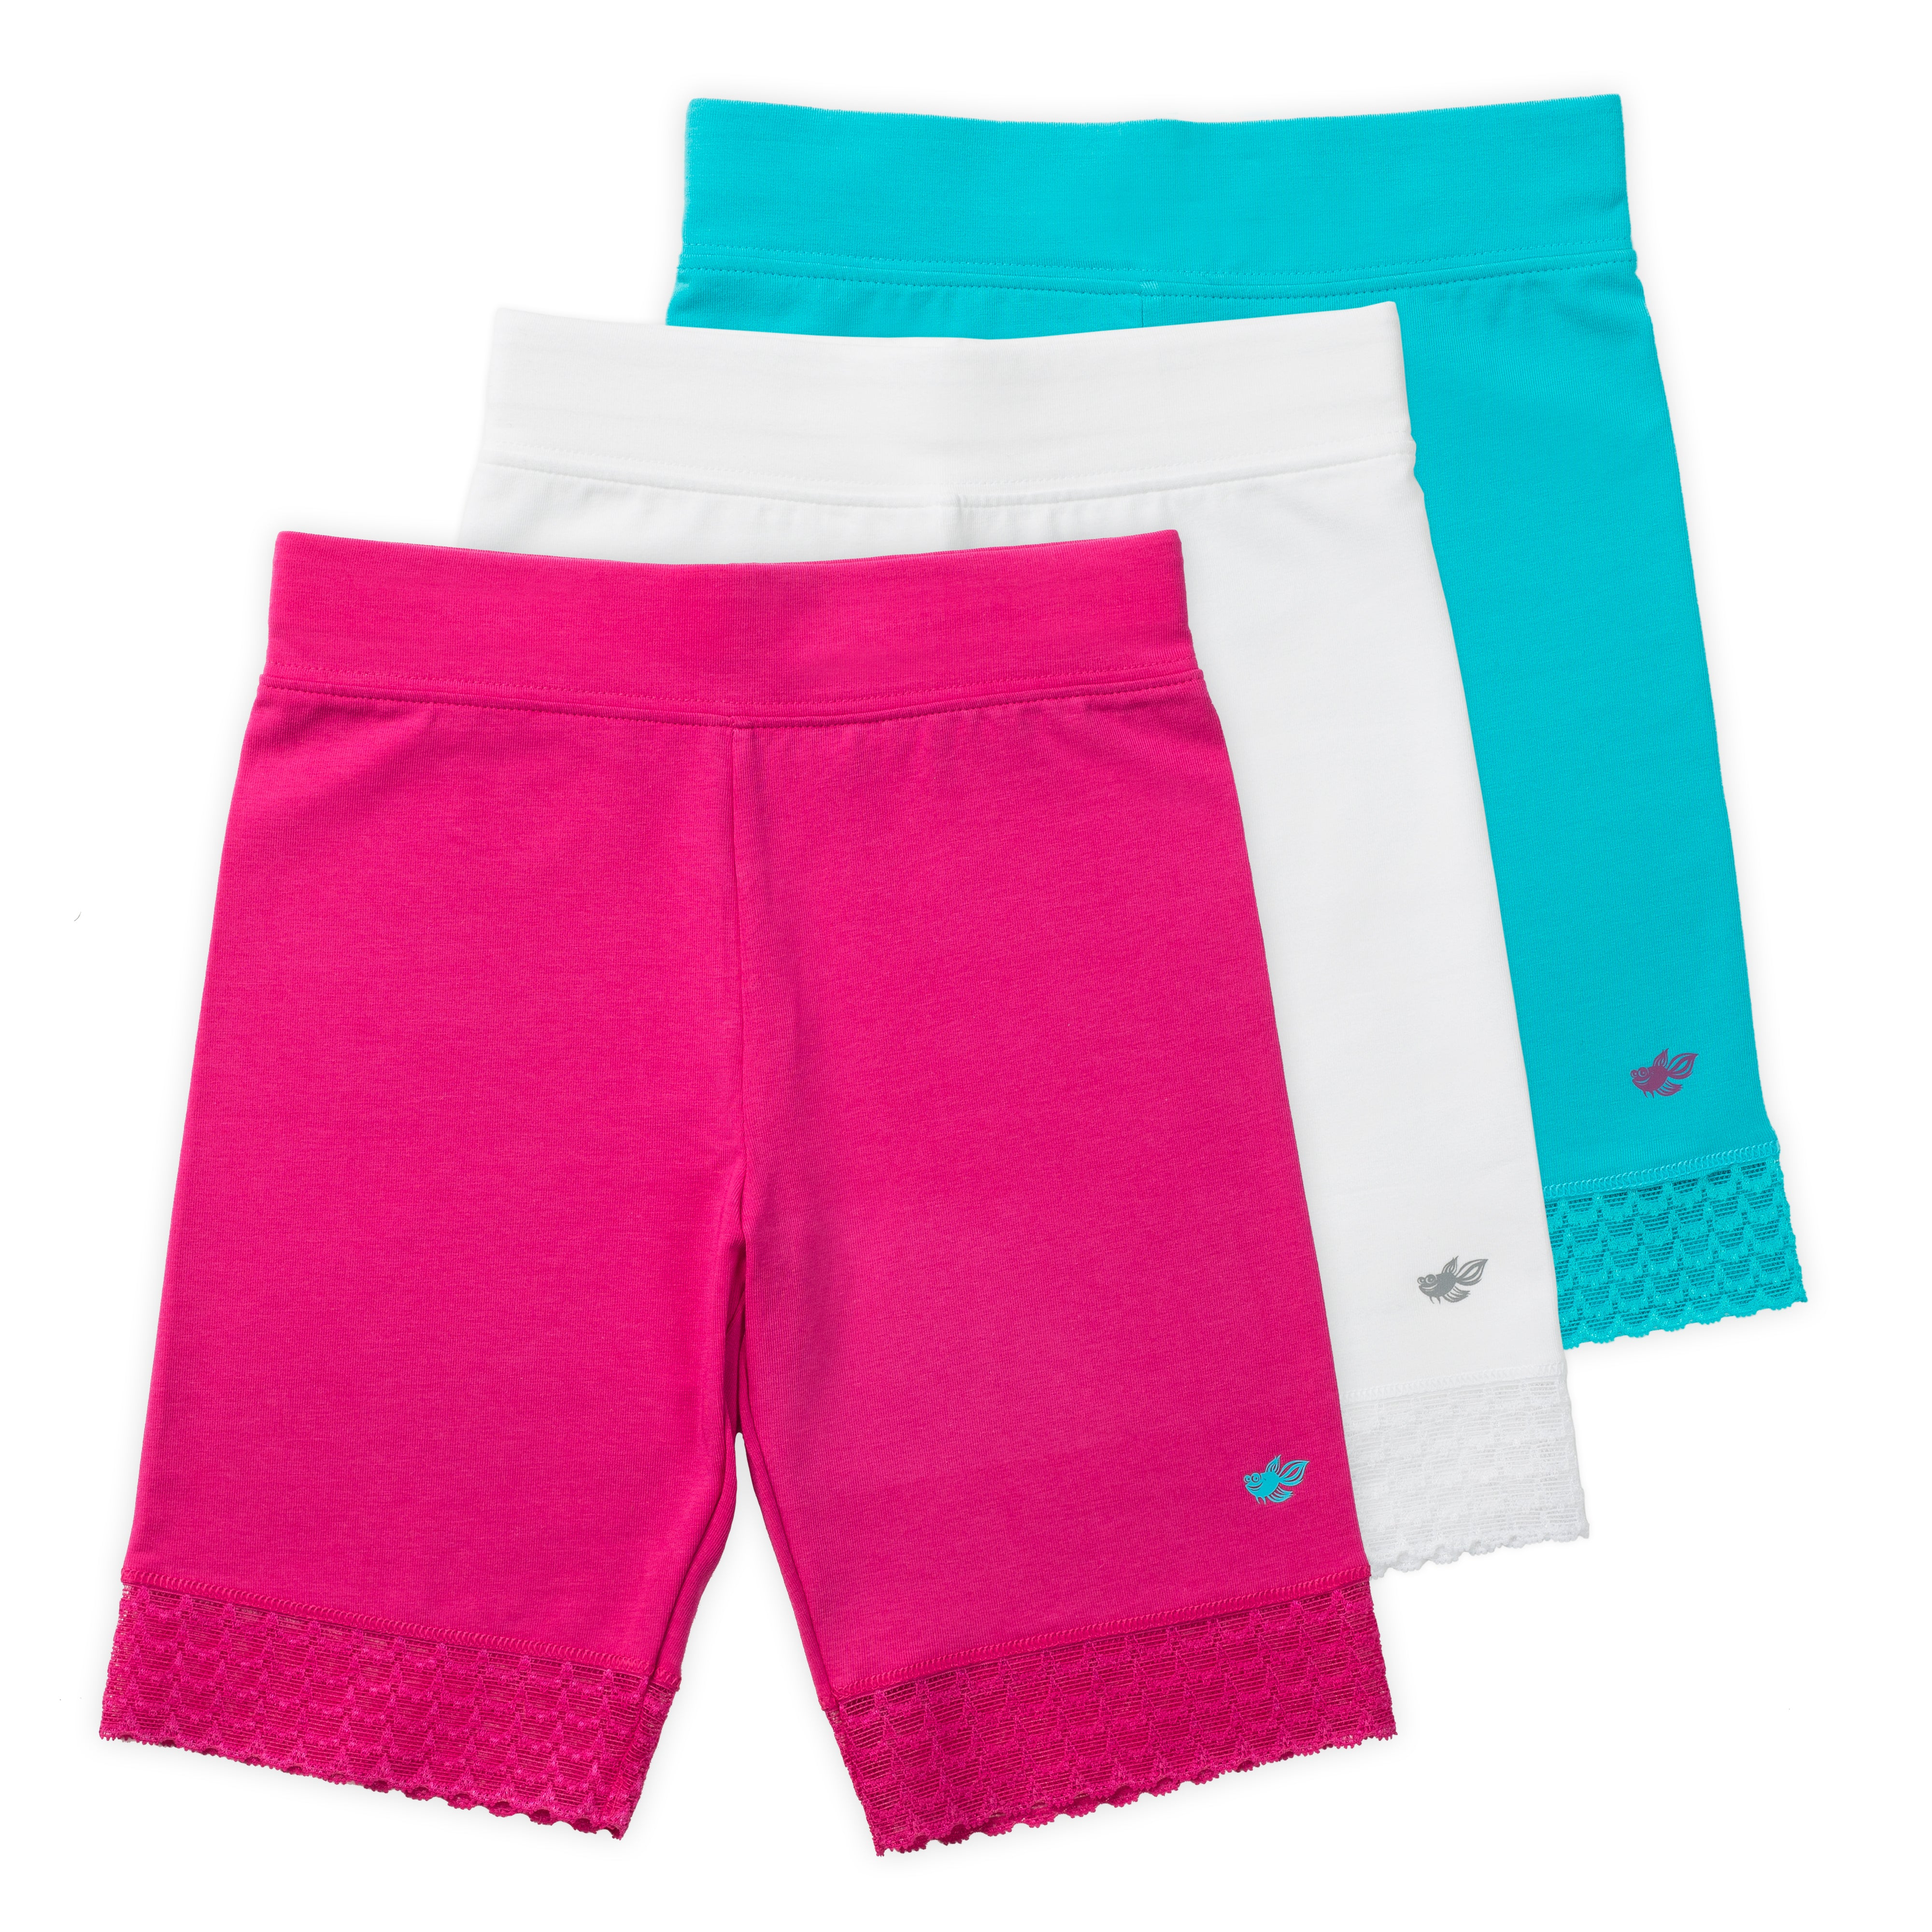 Lucky /& Me Pink and Blue 3-Pack Tagless Lace Trim Jada Girls Capri Leggings Wide Waistband in White Capri Length